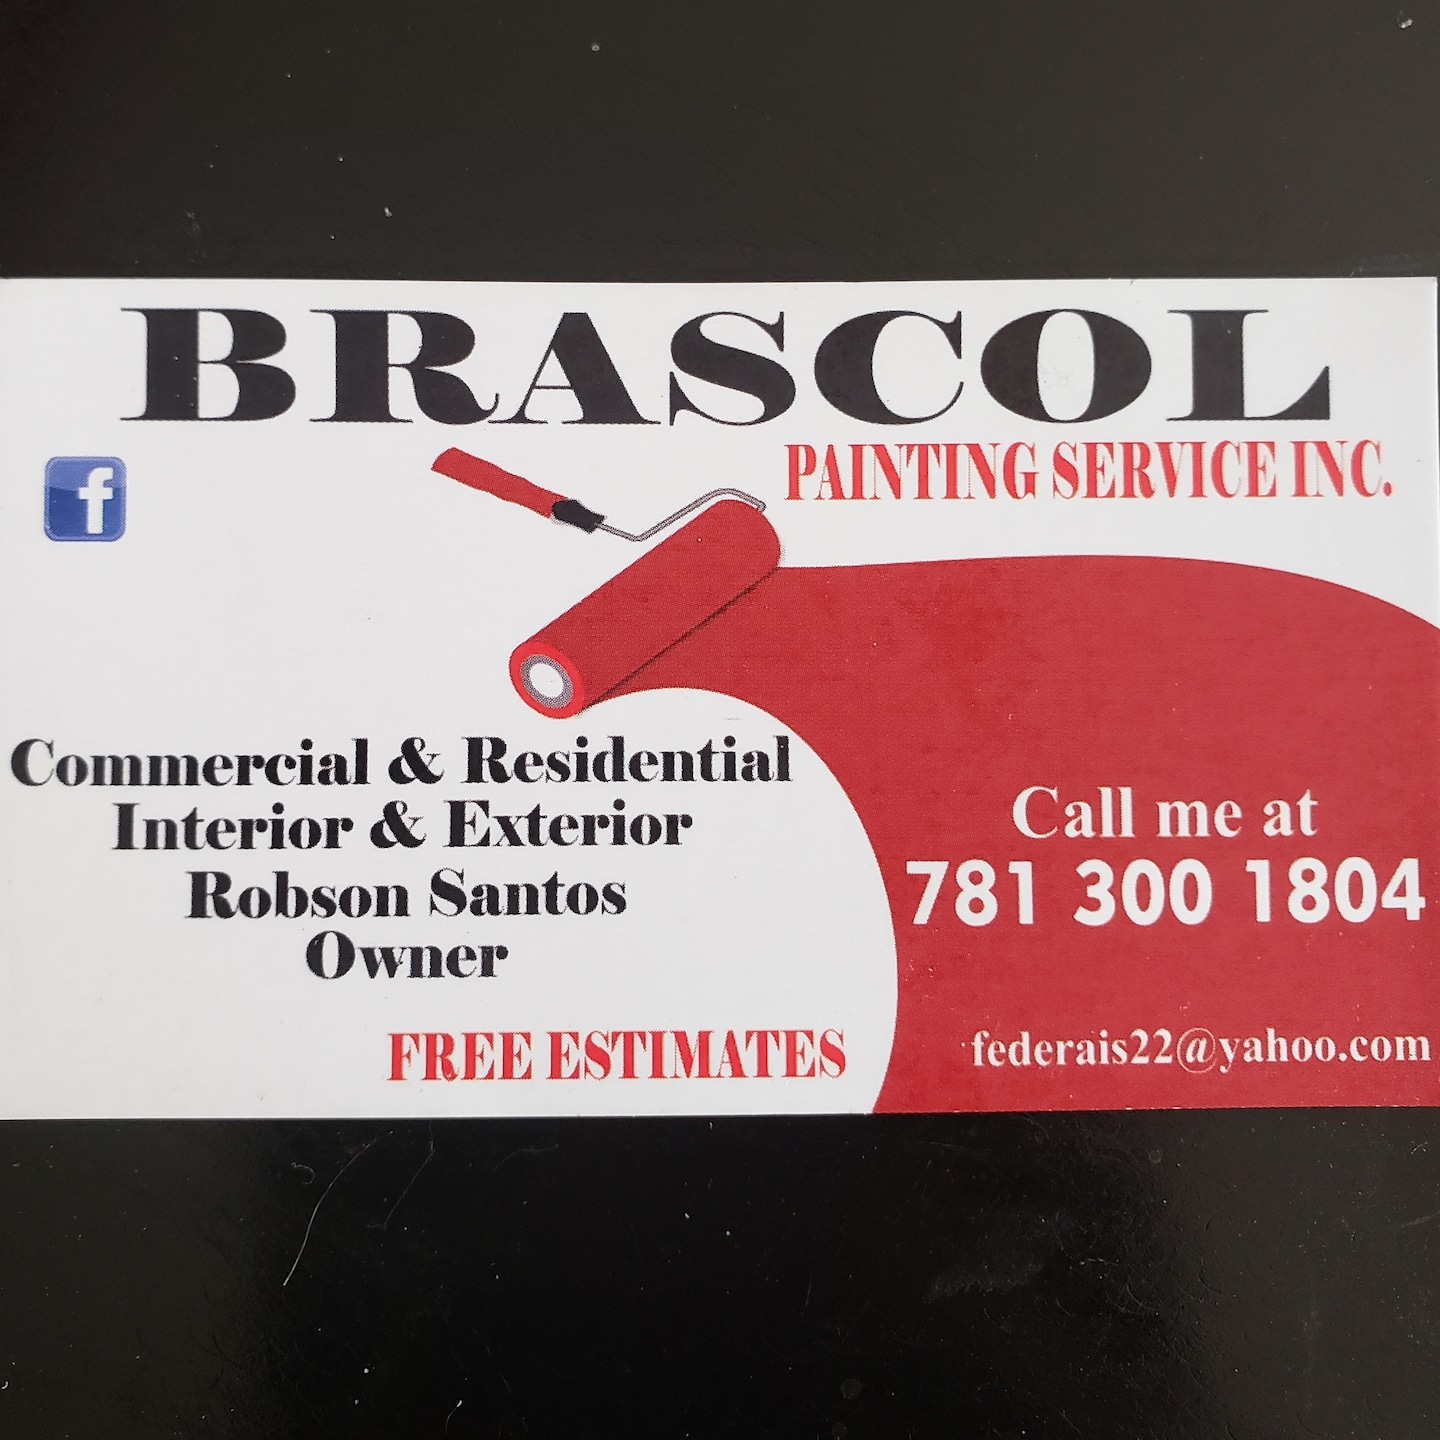 Brascol Painting Service Inc